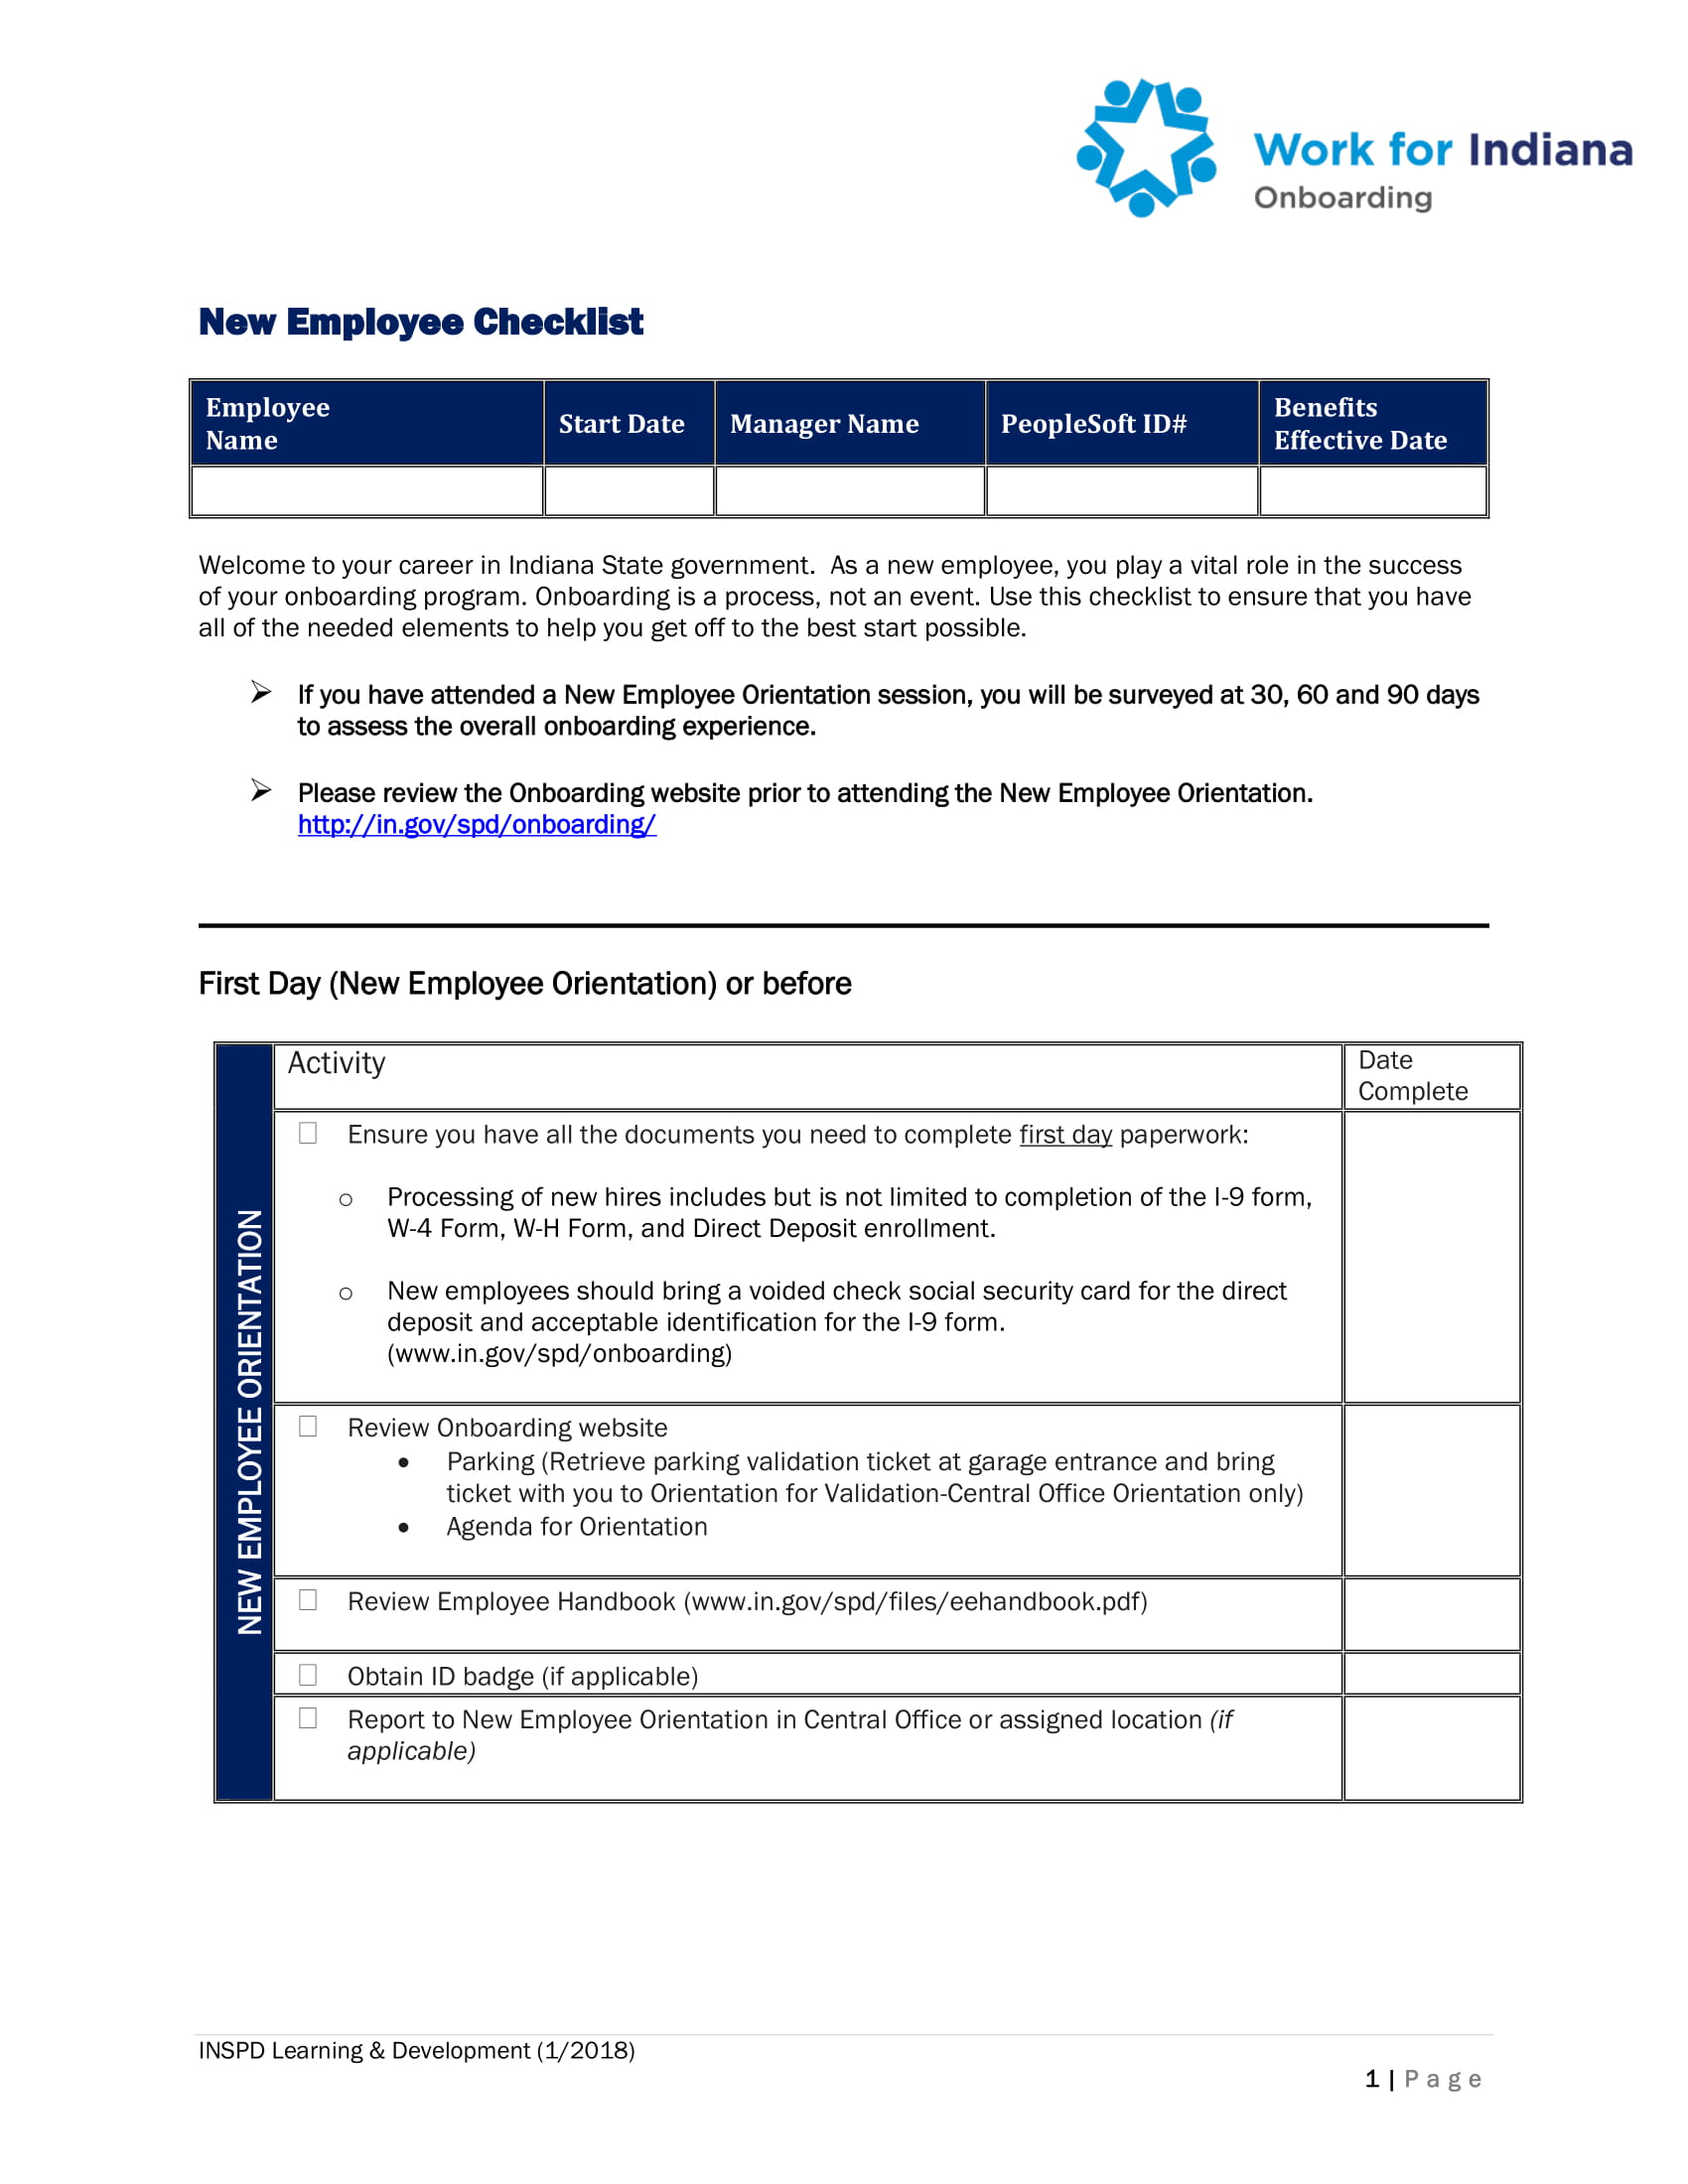 new employee orientation program activity checklist